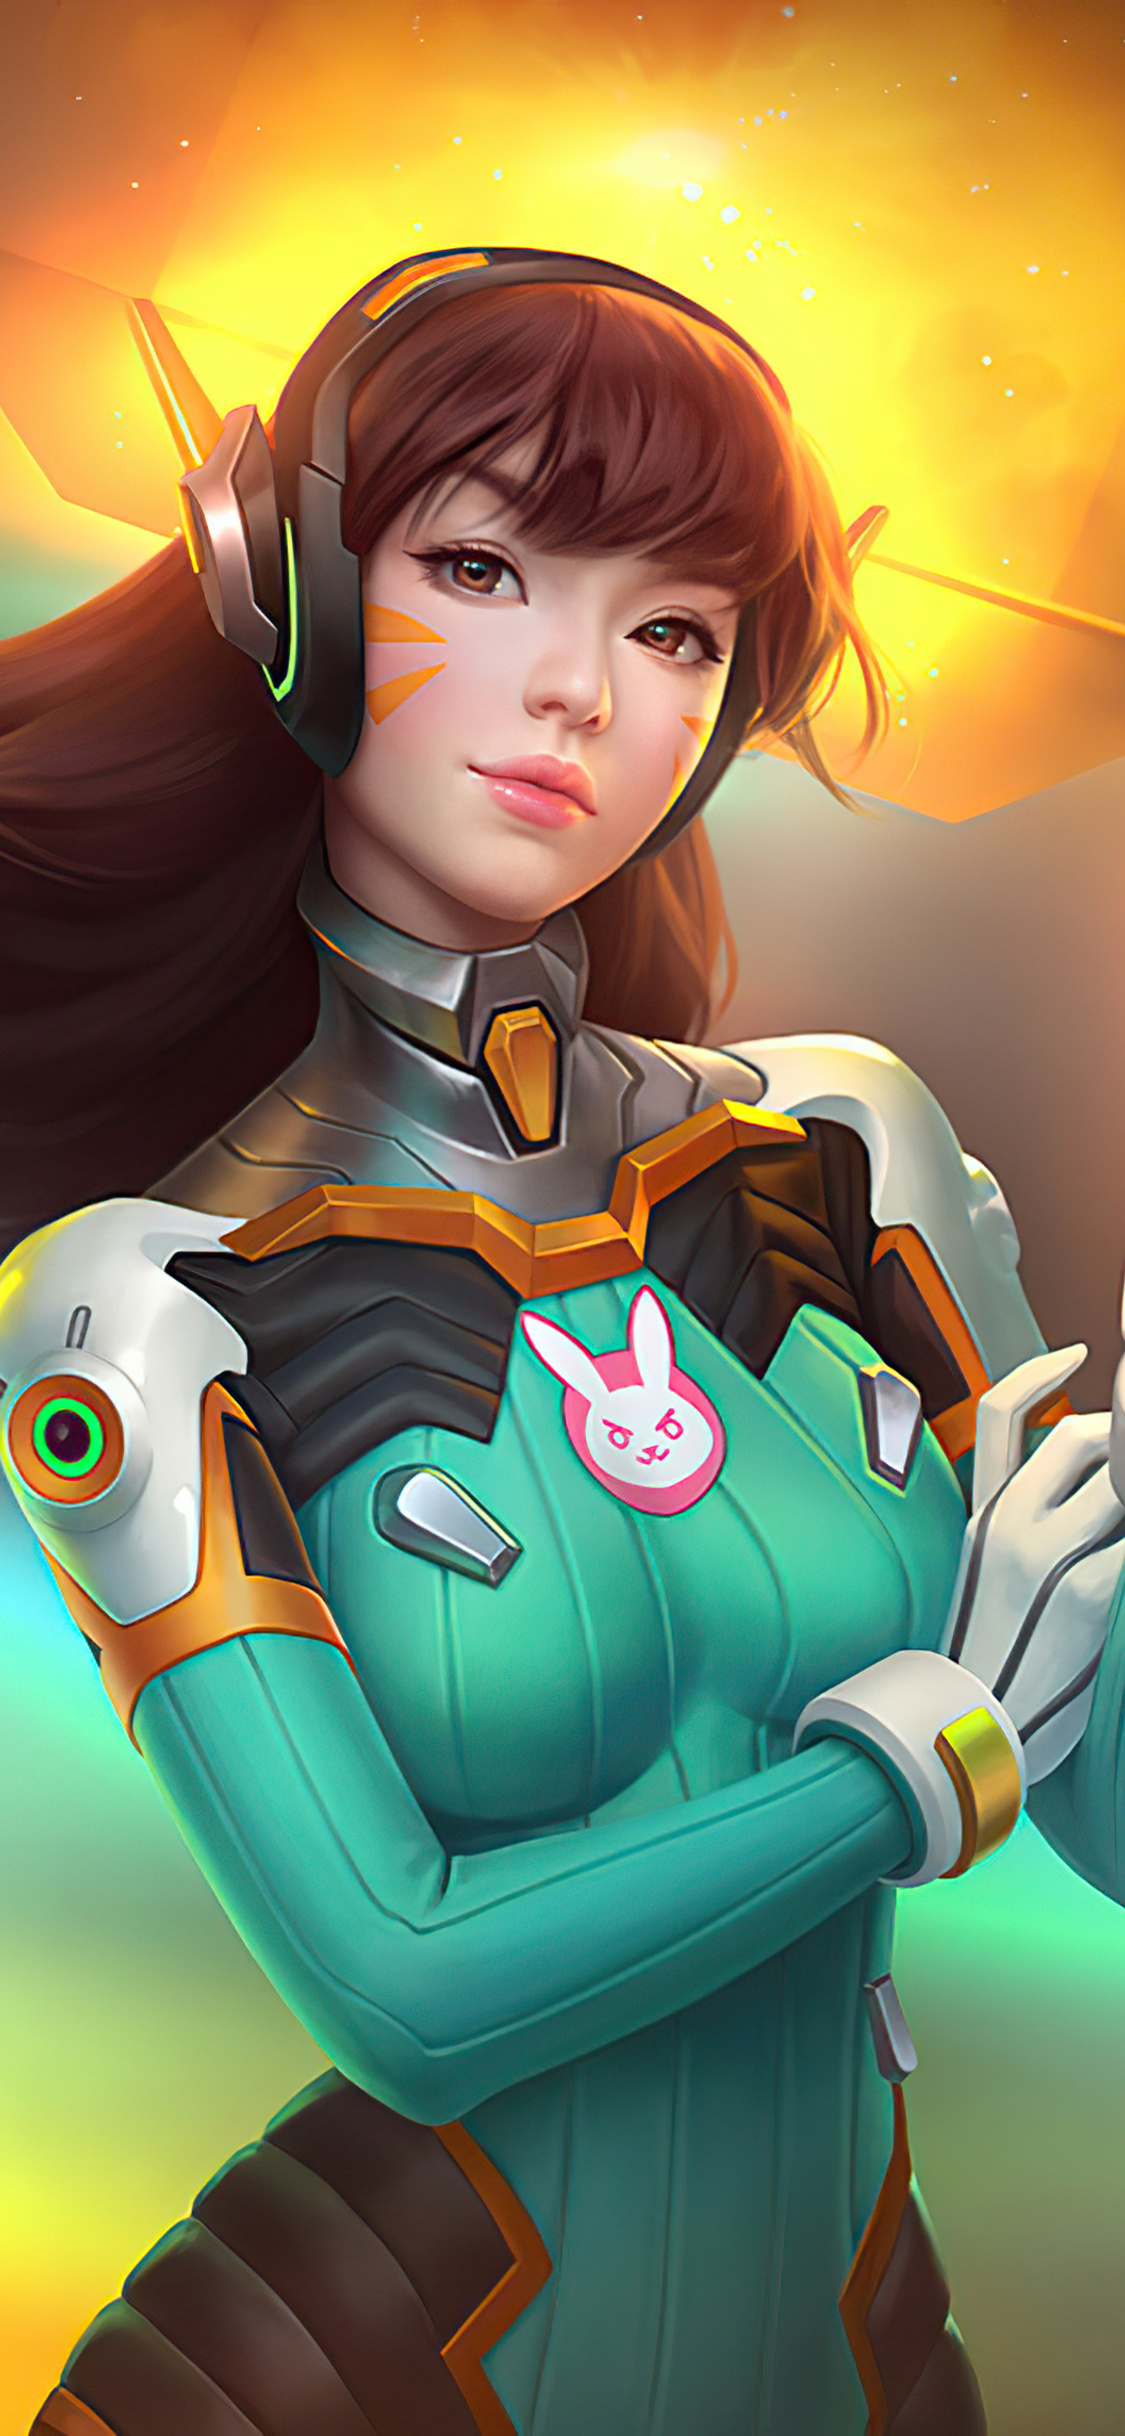 overwatch-dva-long-hairs-4k-gk.jpg